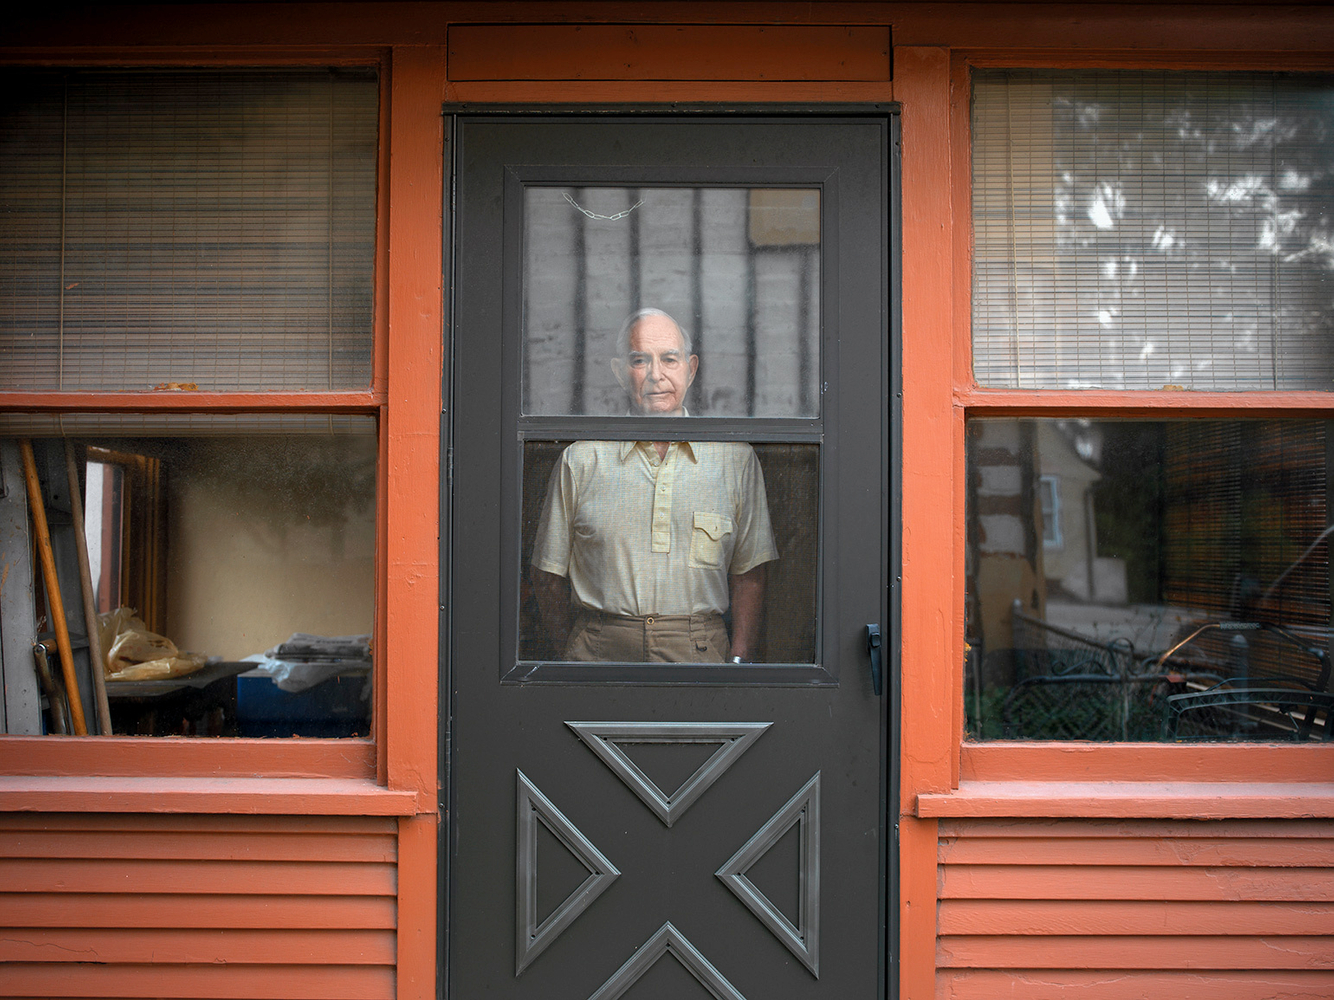 Lee in His Doorway, Marktown, East Chicago, IN 2003